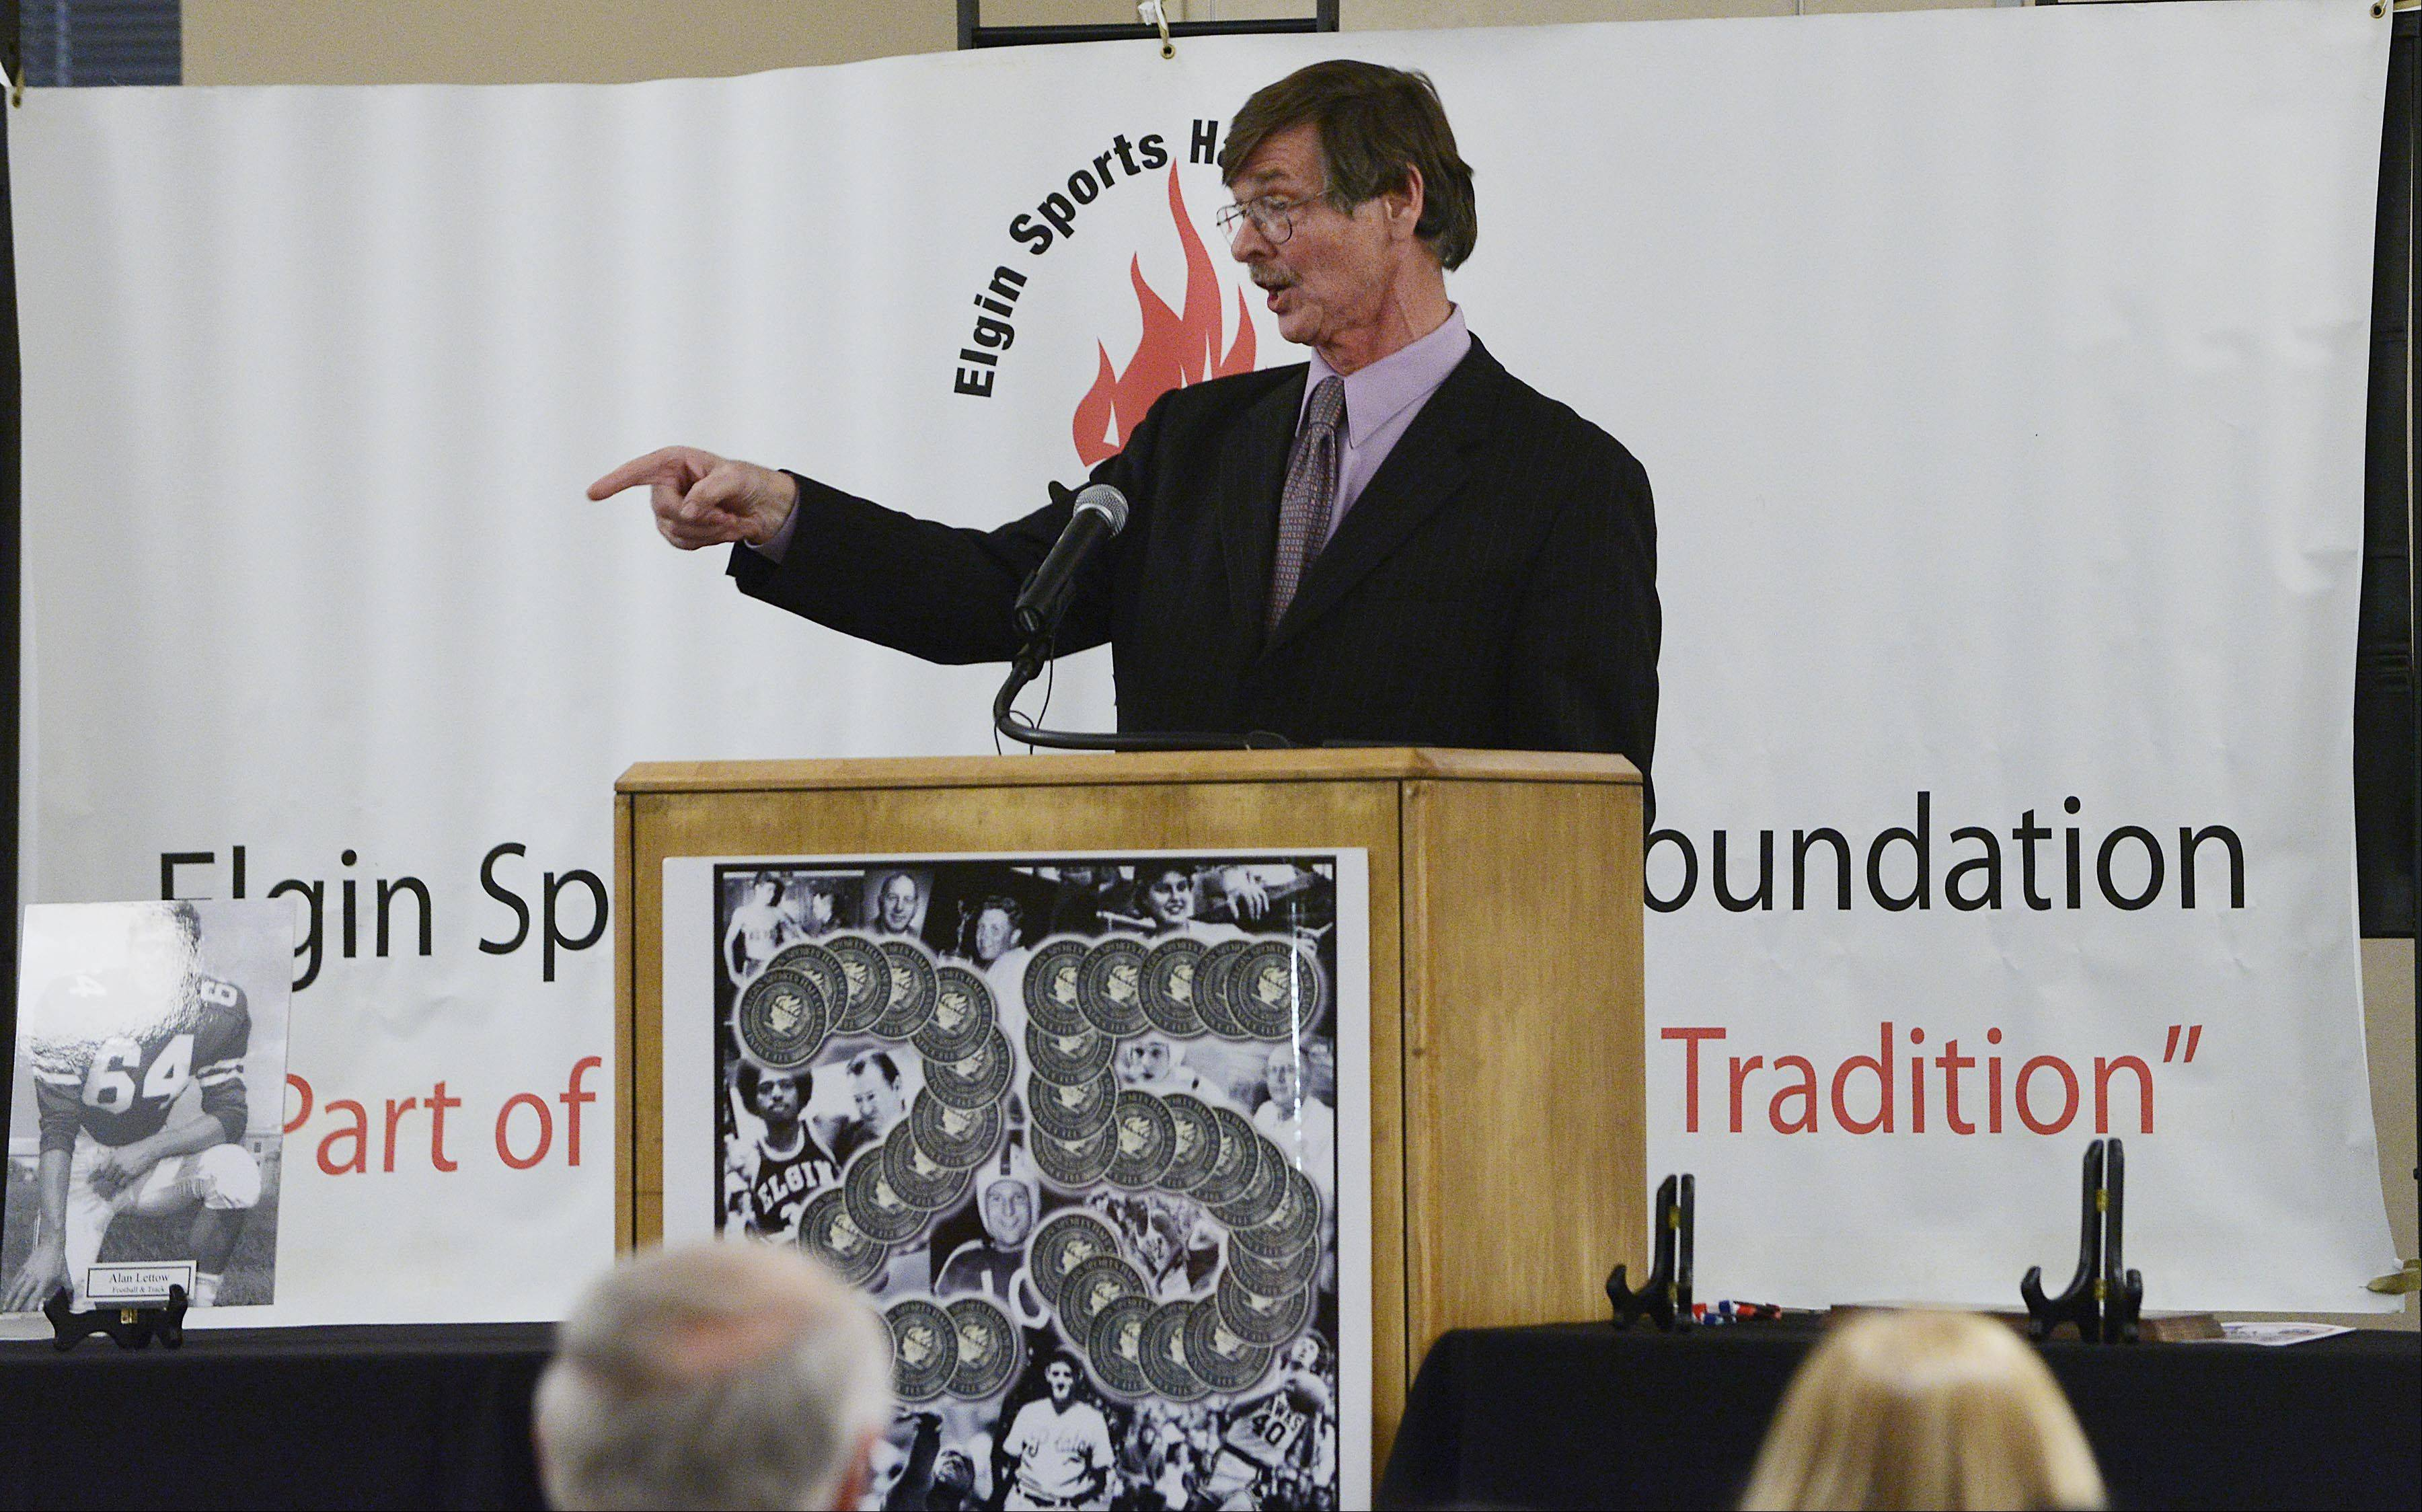 Jeff Myers tells stories of games he called as a sportscaster as he accepts his plaque during the 34th Induction Ceremony of the Elgin Sports Hall of Fame Foundation Sunday at The Centre of Elgin.